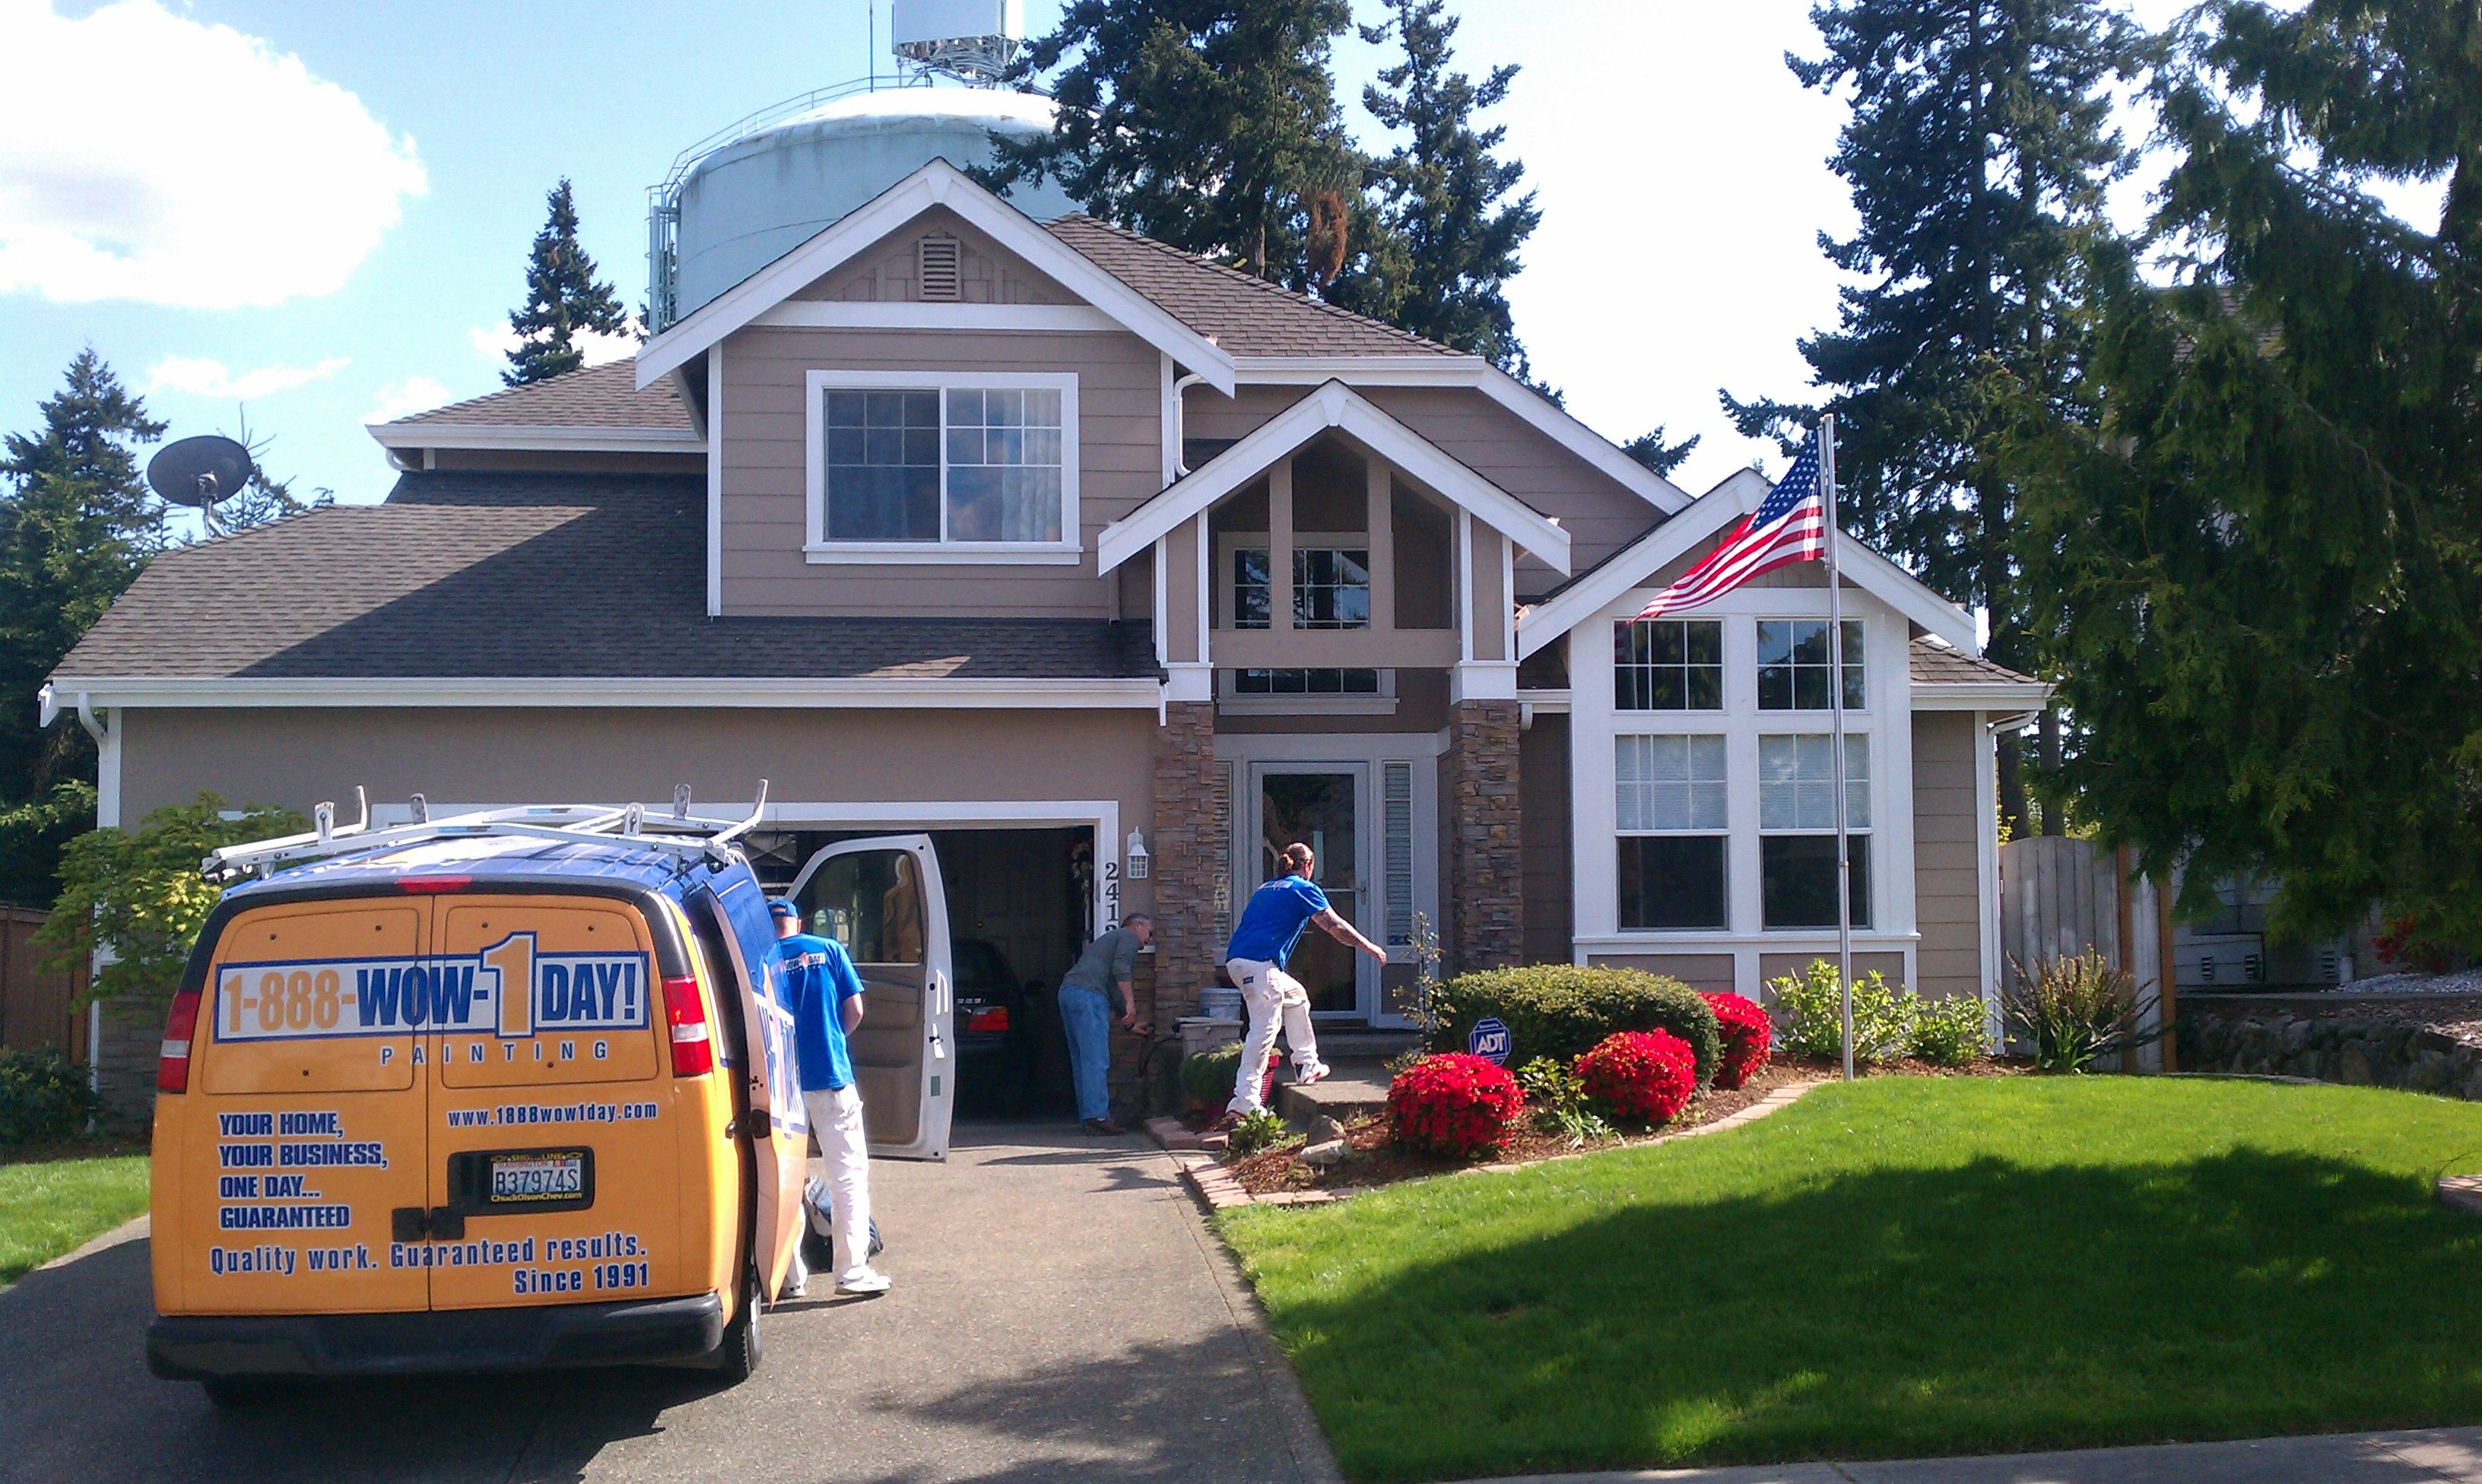 1-888-WOW-1DAY! Painting Seattle Franchise - Completed full exterior painting job in one day!